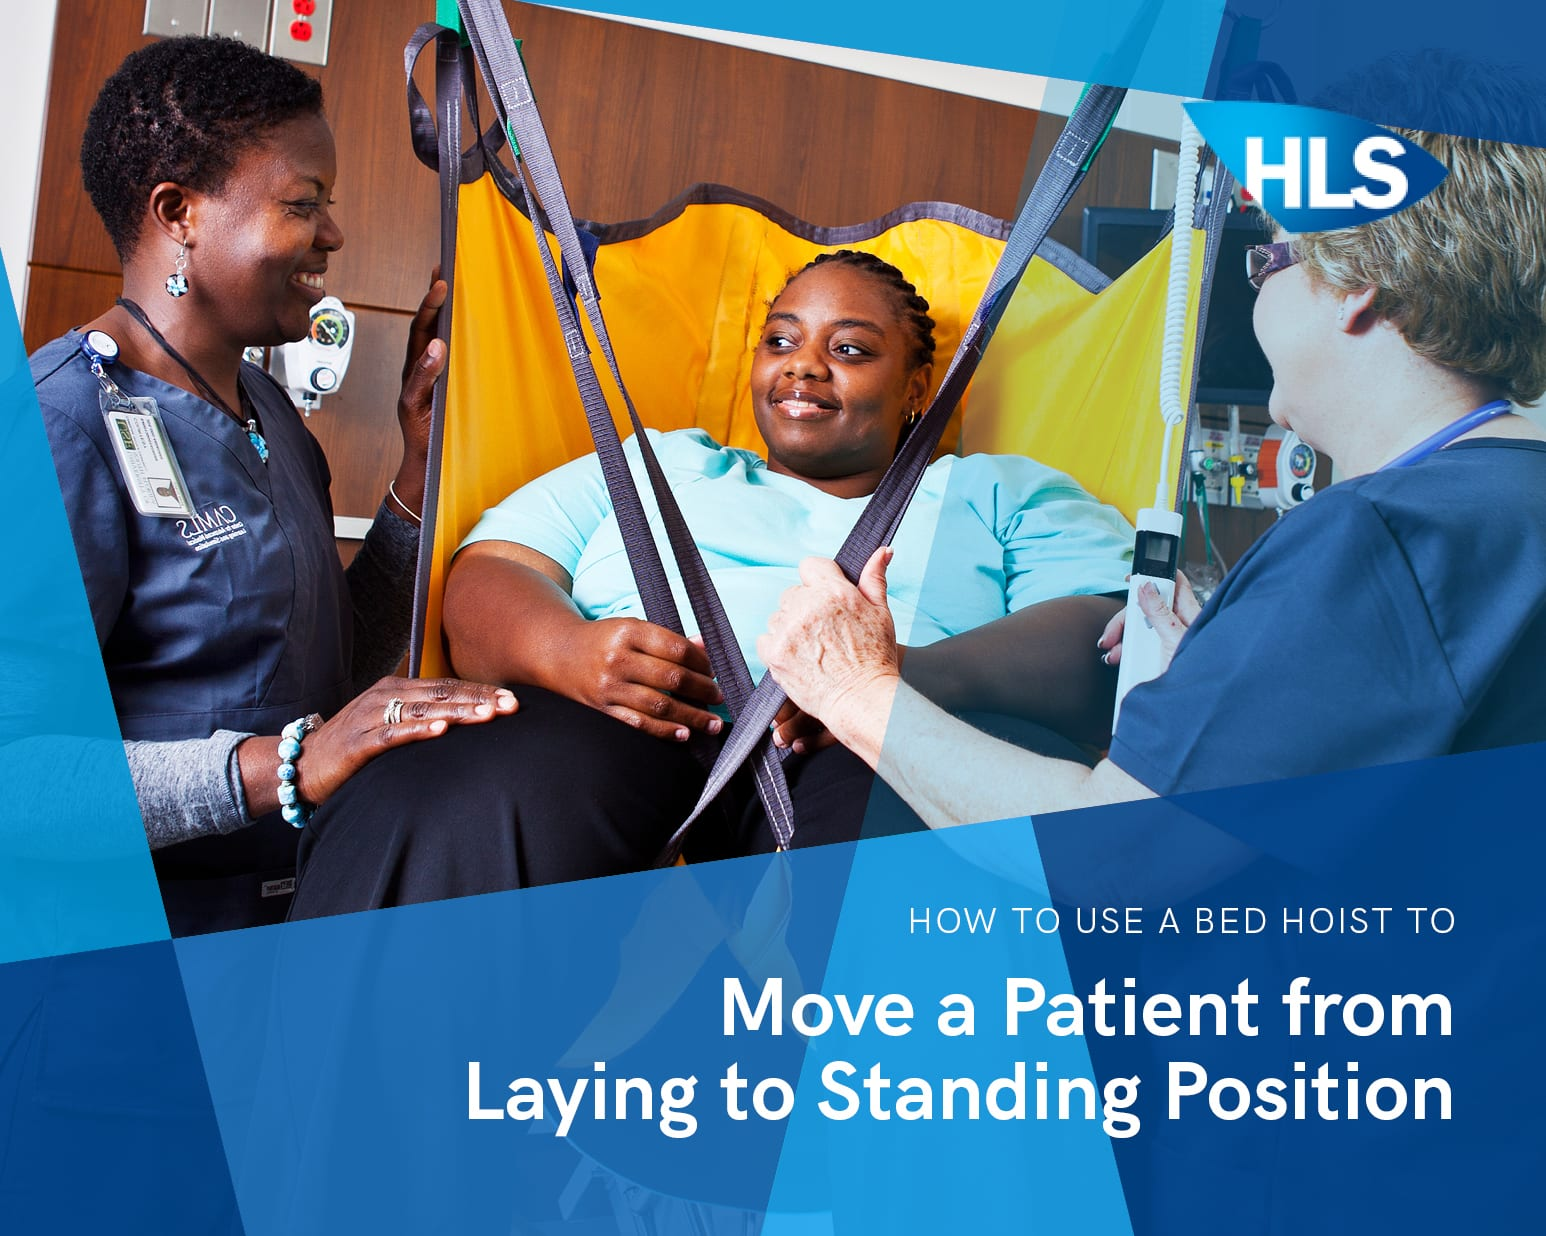 How to Use a Bed Hoist to Move a Patient from Laying to Standing Position